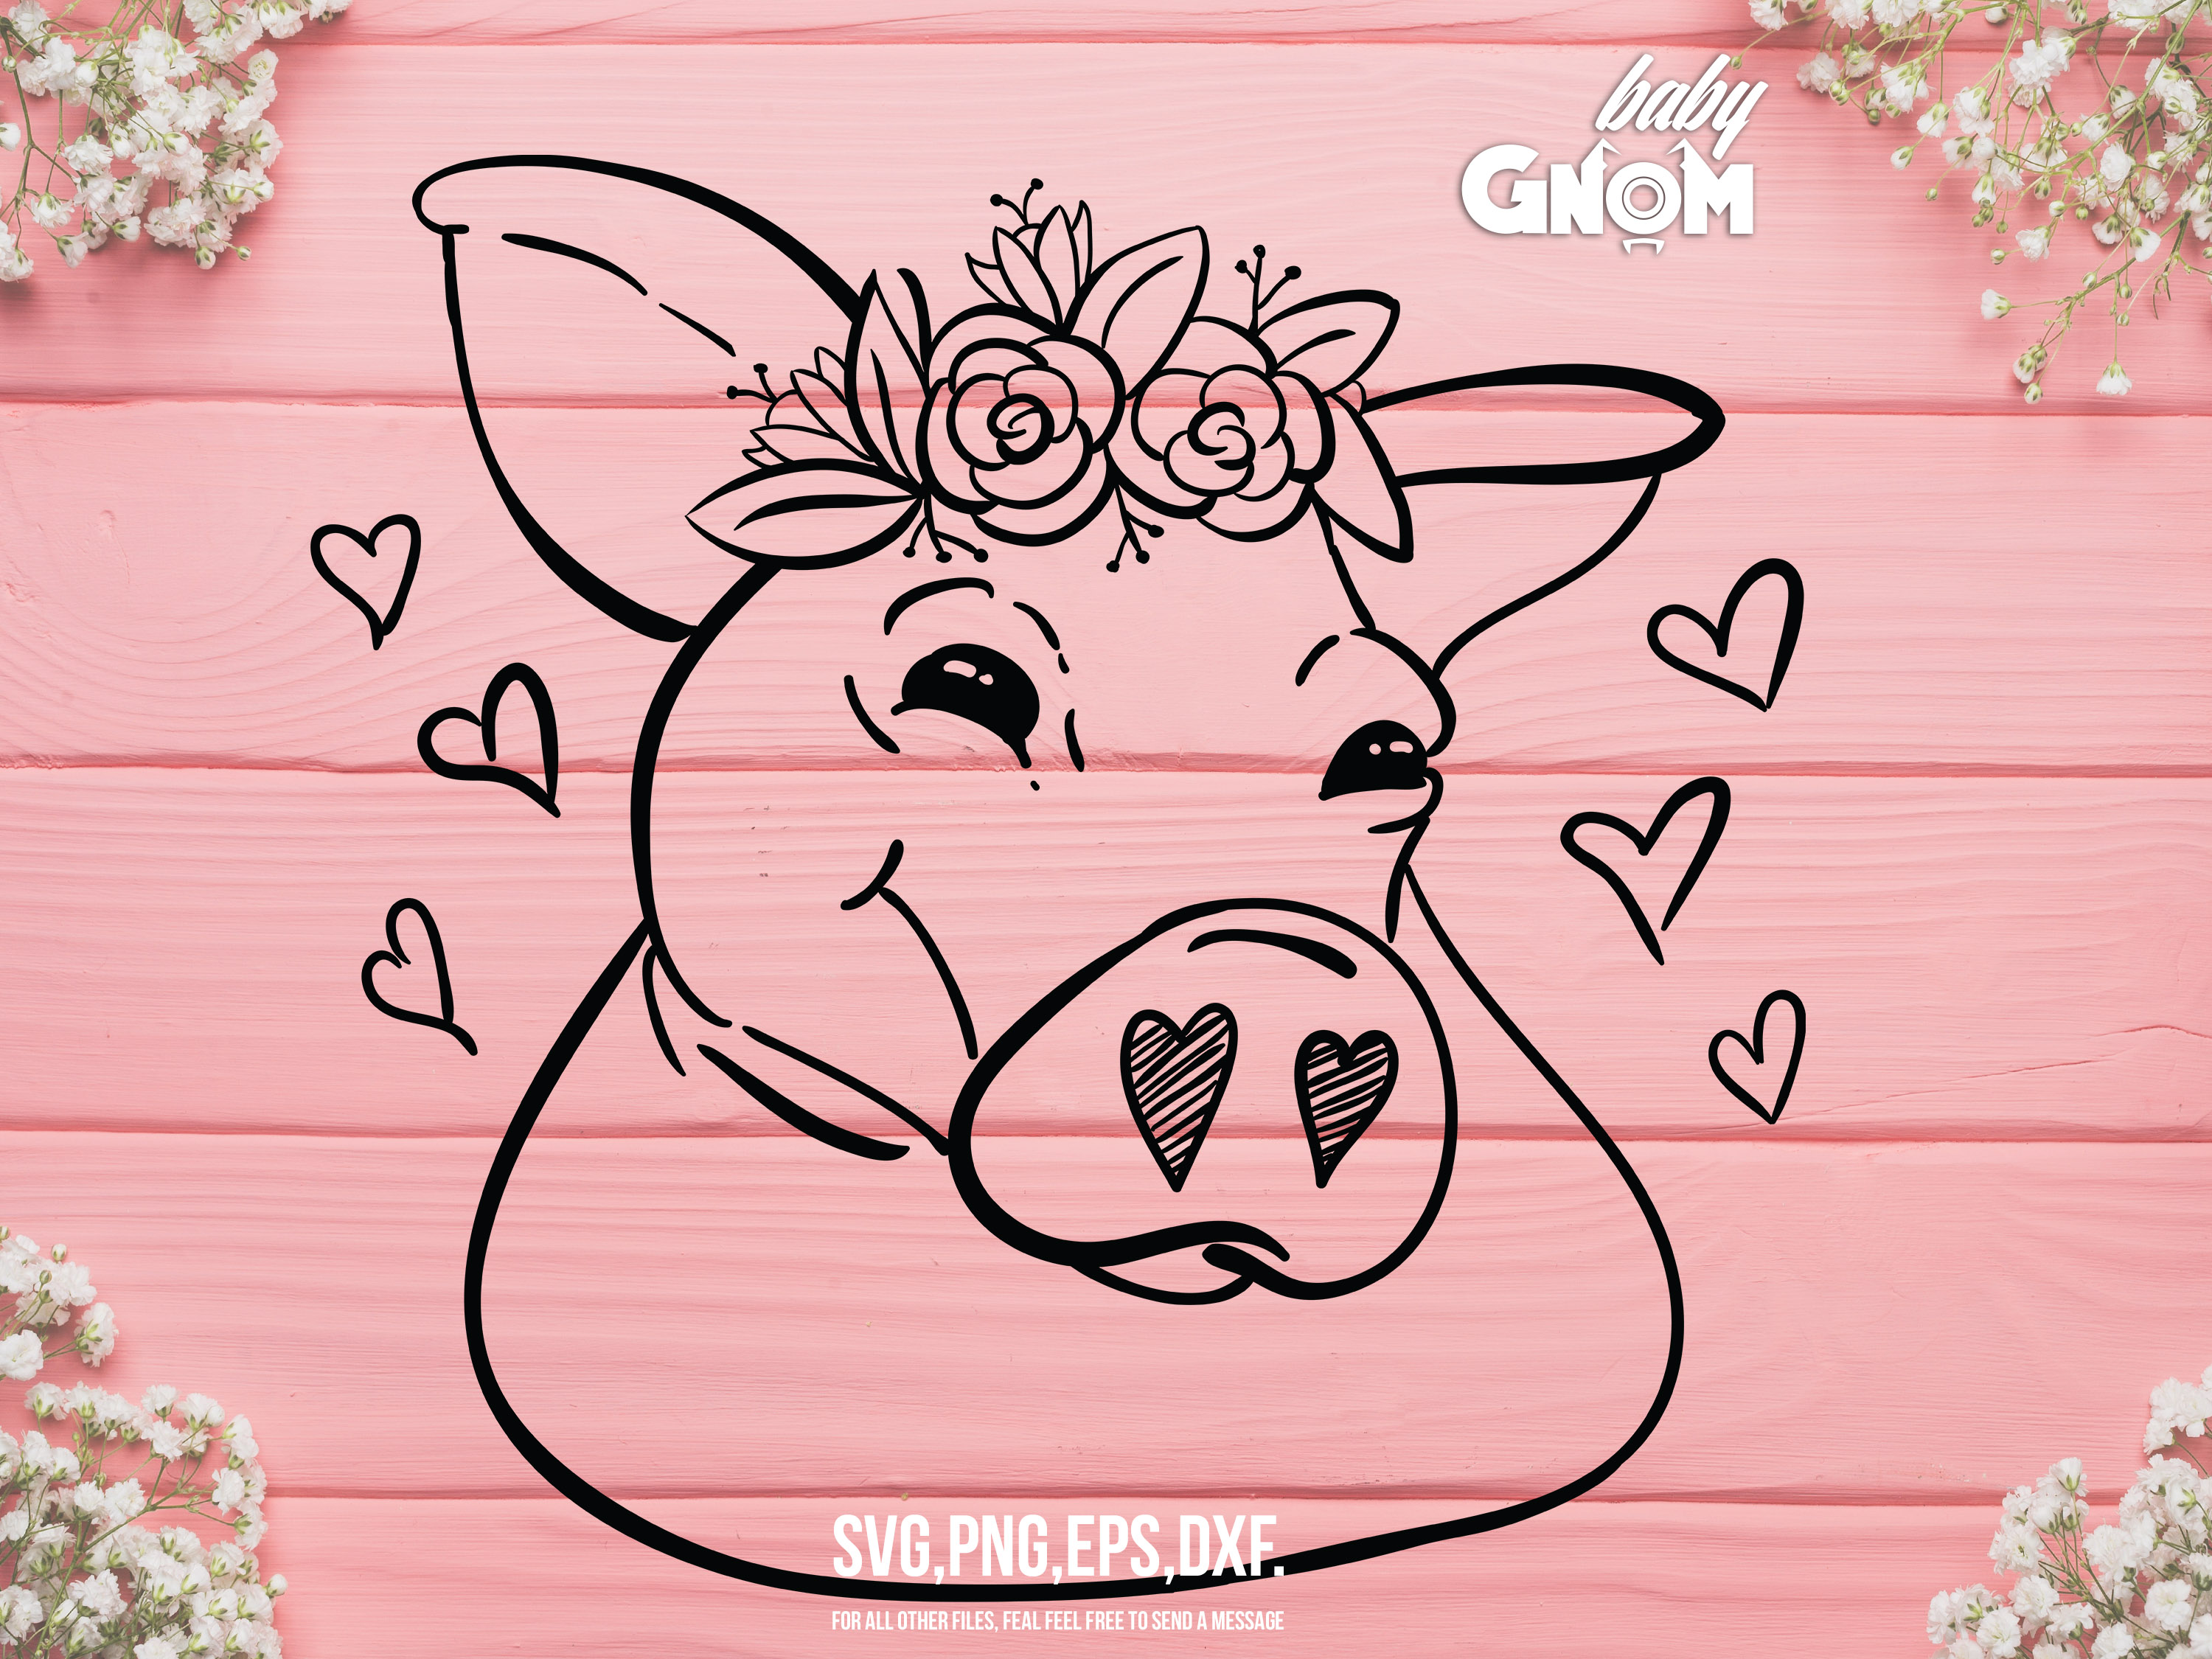 Download Free Pig With Flower Crown Graphic By Babygnom Creative Fabrica for Cricut Explore, Silhouette and other cutting machines.